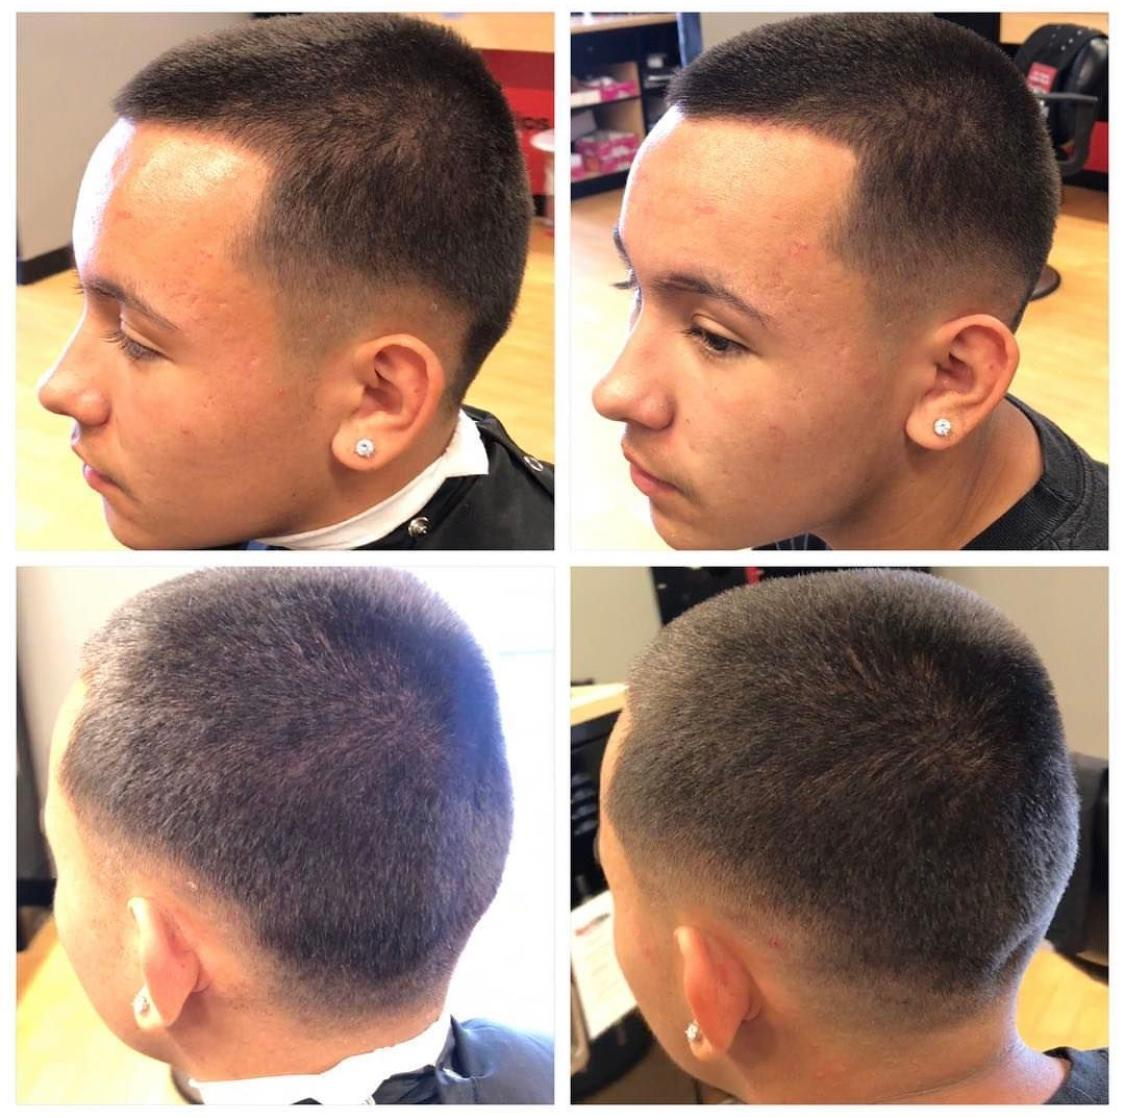 Sport Clips Haircuts of New Port Richey image 32